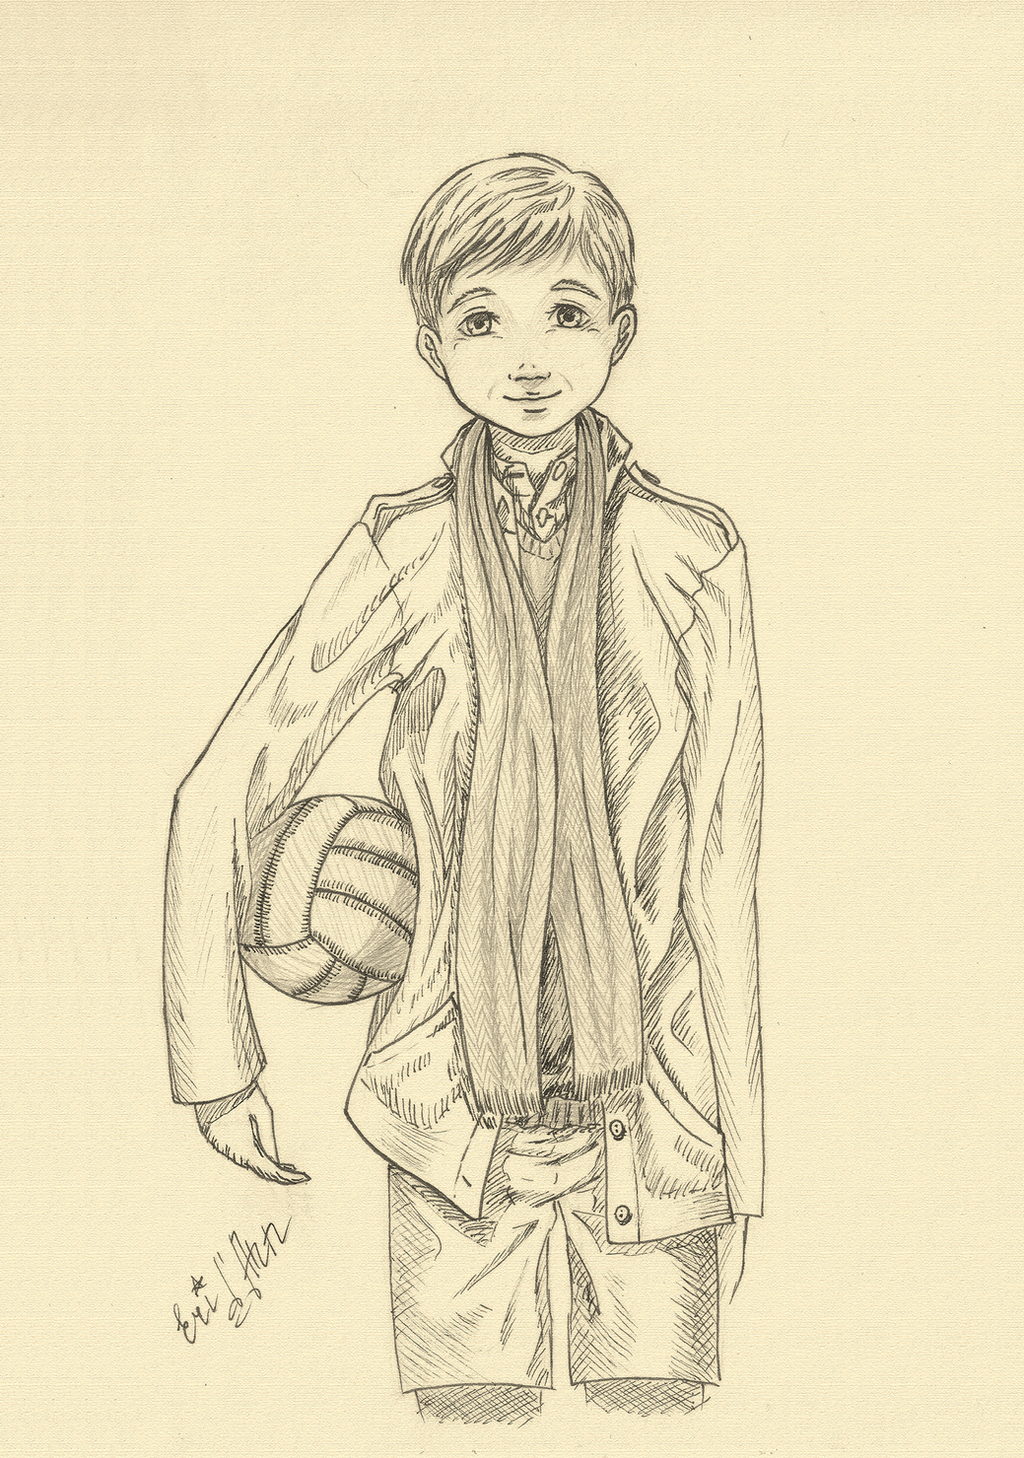 fanart the book thief liesel by eri d ann on fanart the book thief rudy by eri d ann